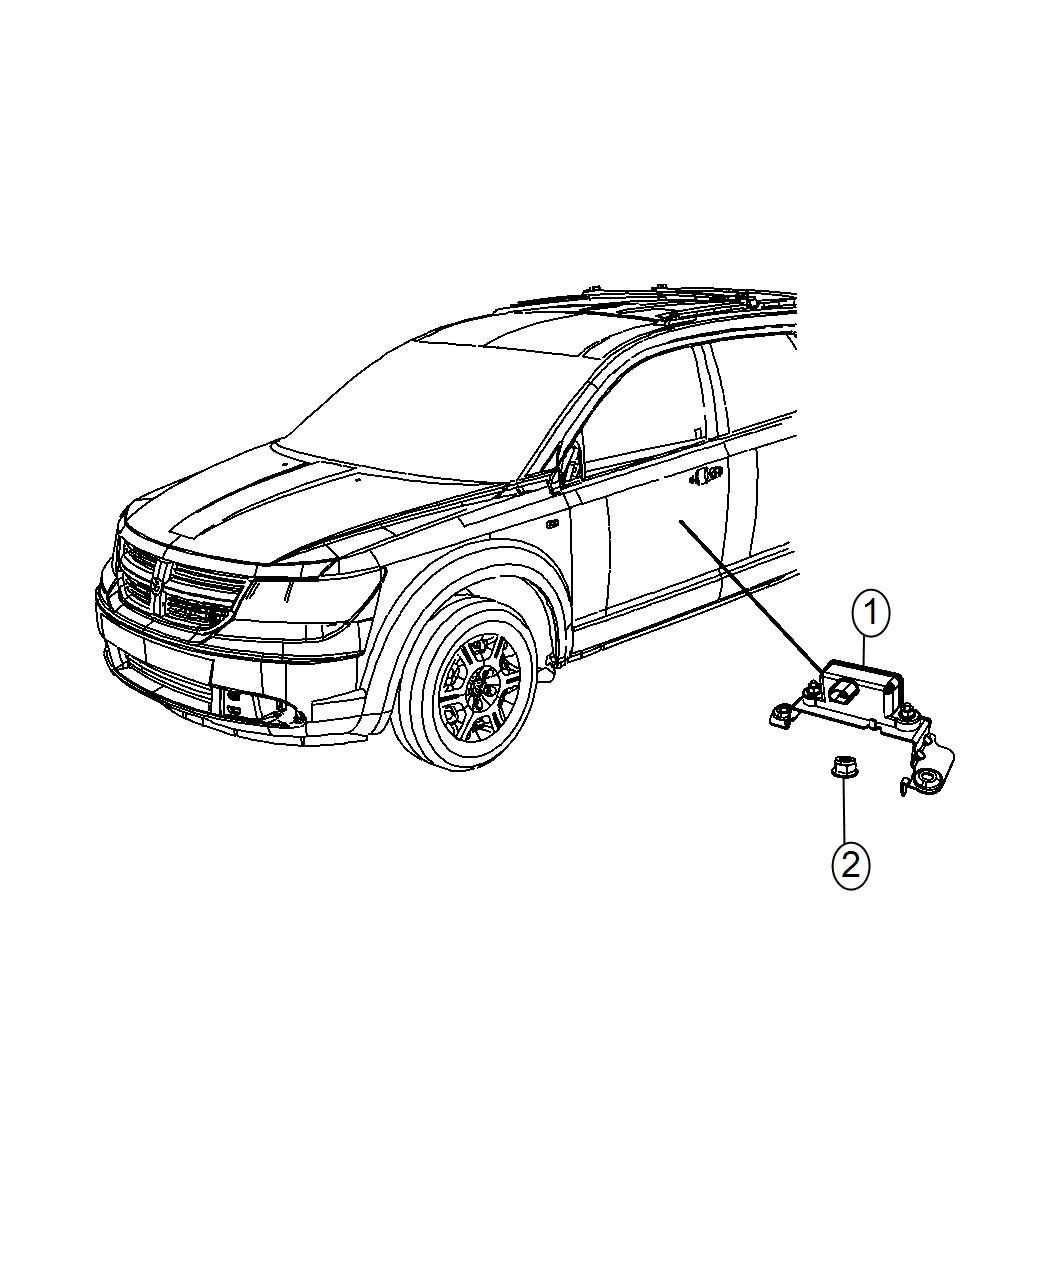 2016 Dodge Journey Sensor. Dynamics. Used for: lateral